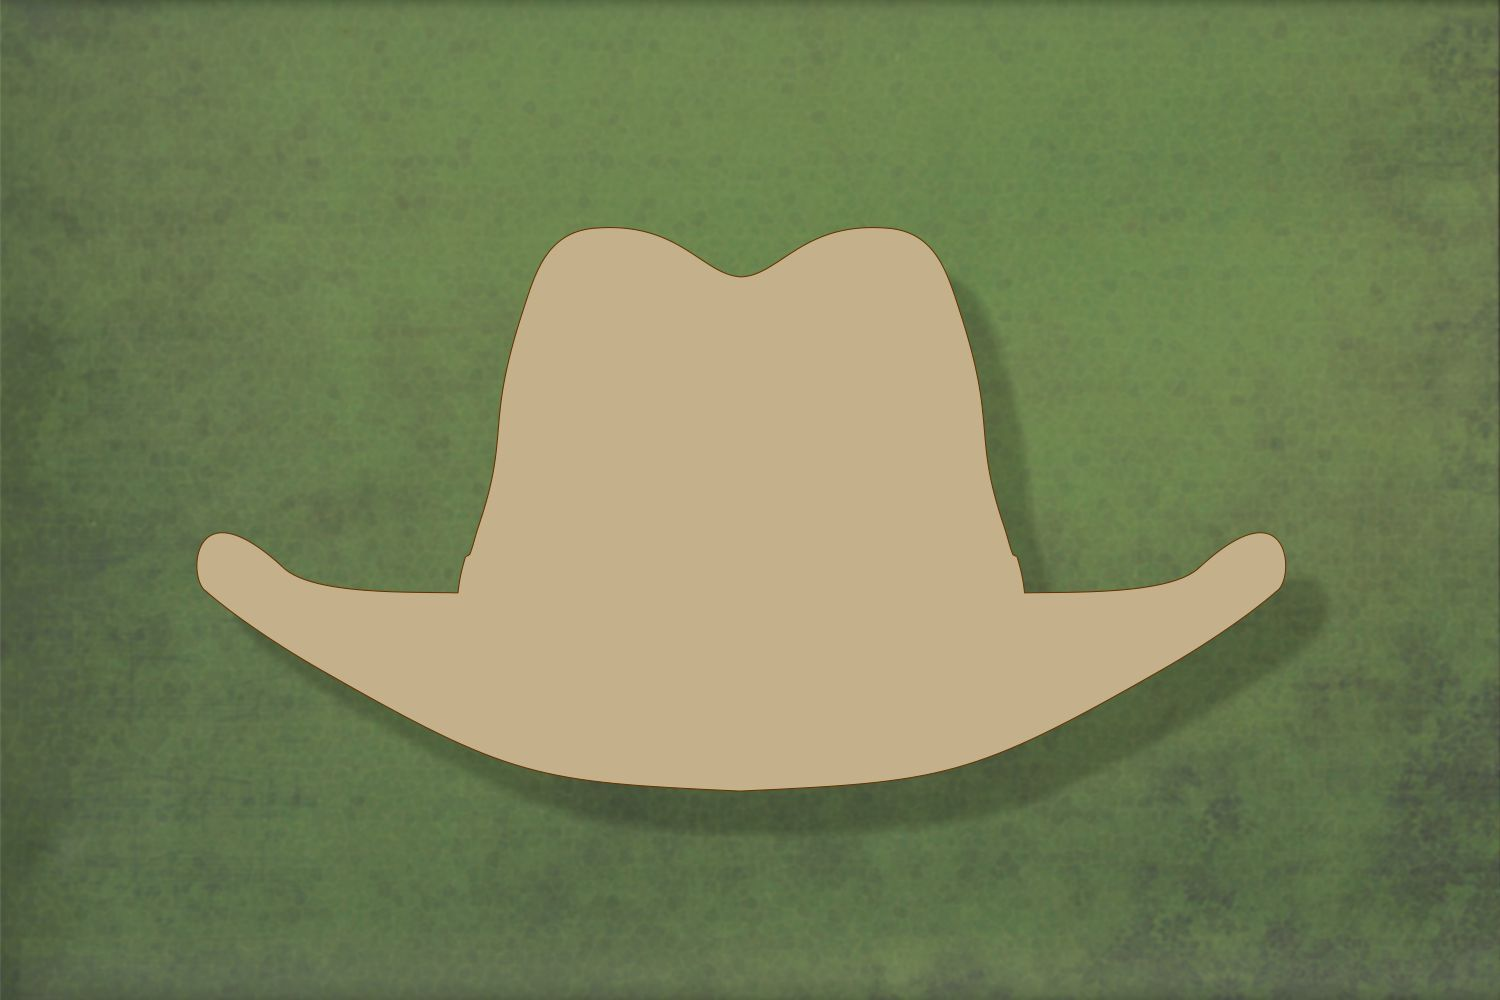 Laser cut, blank wooden Stetson-cowboy hat shape for craft